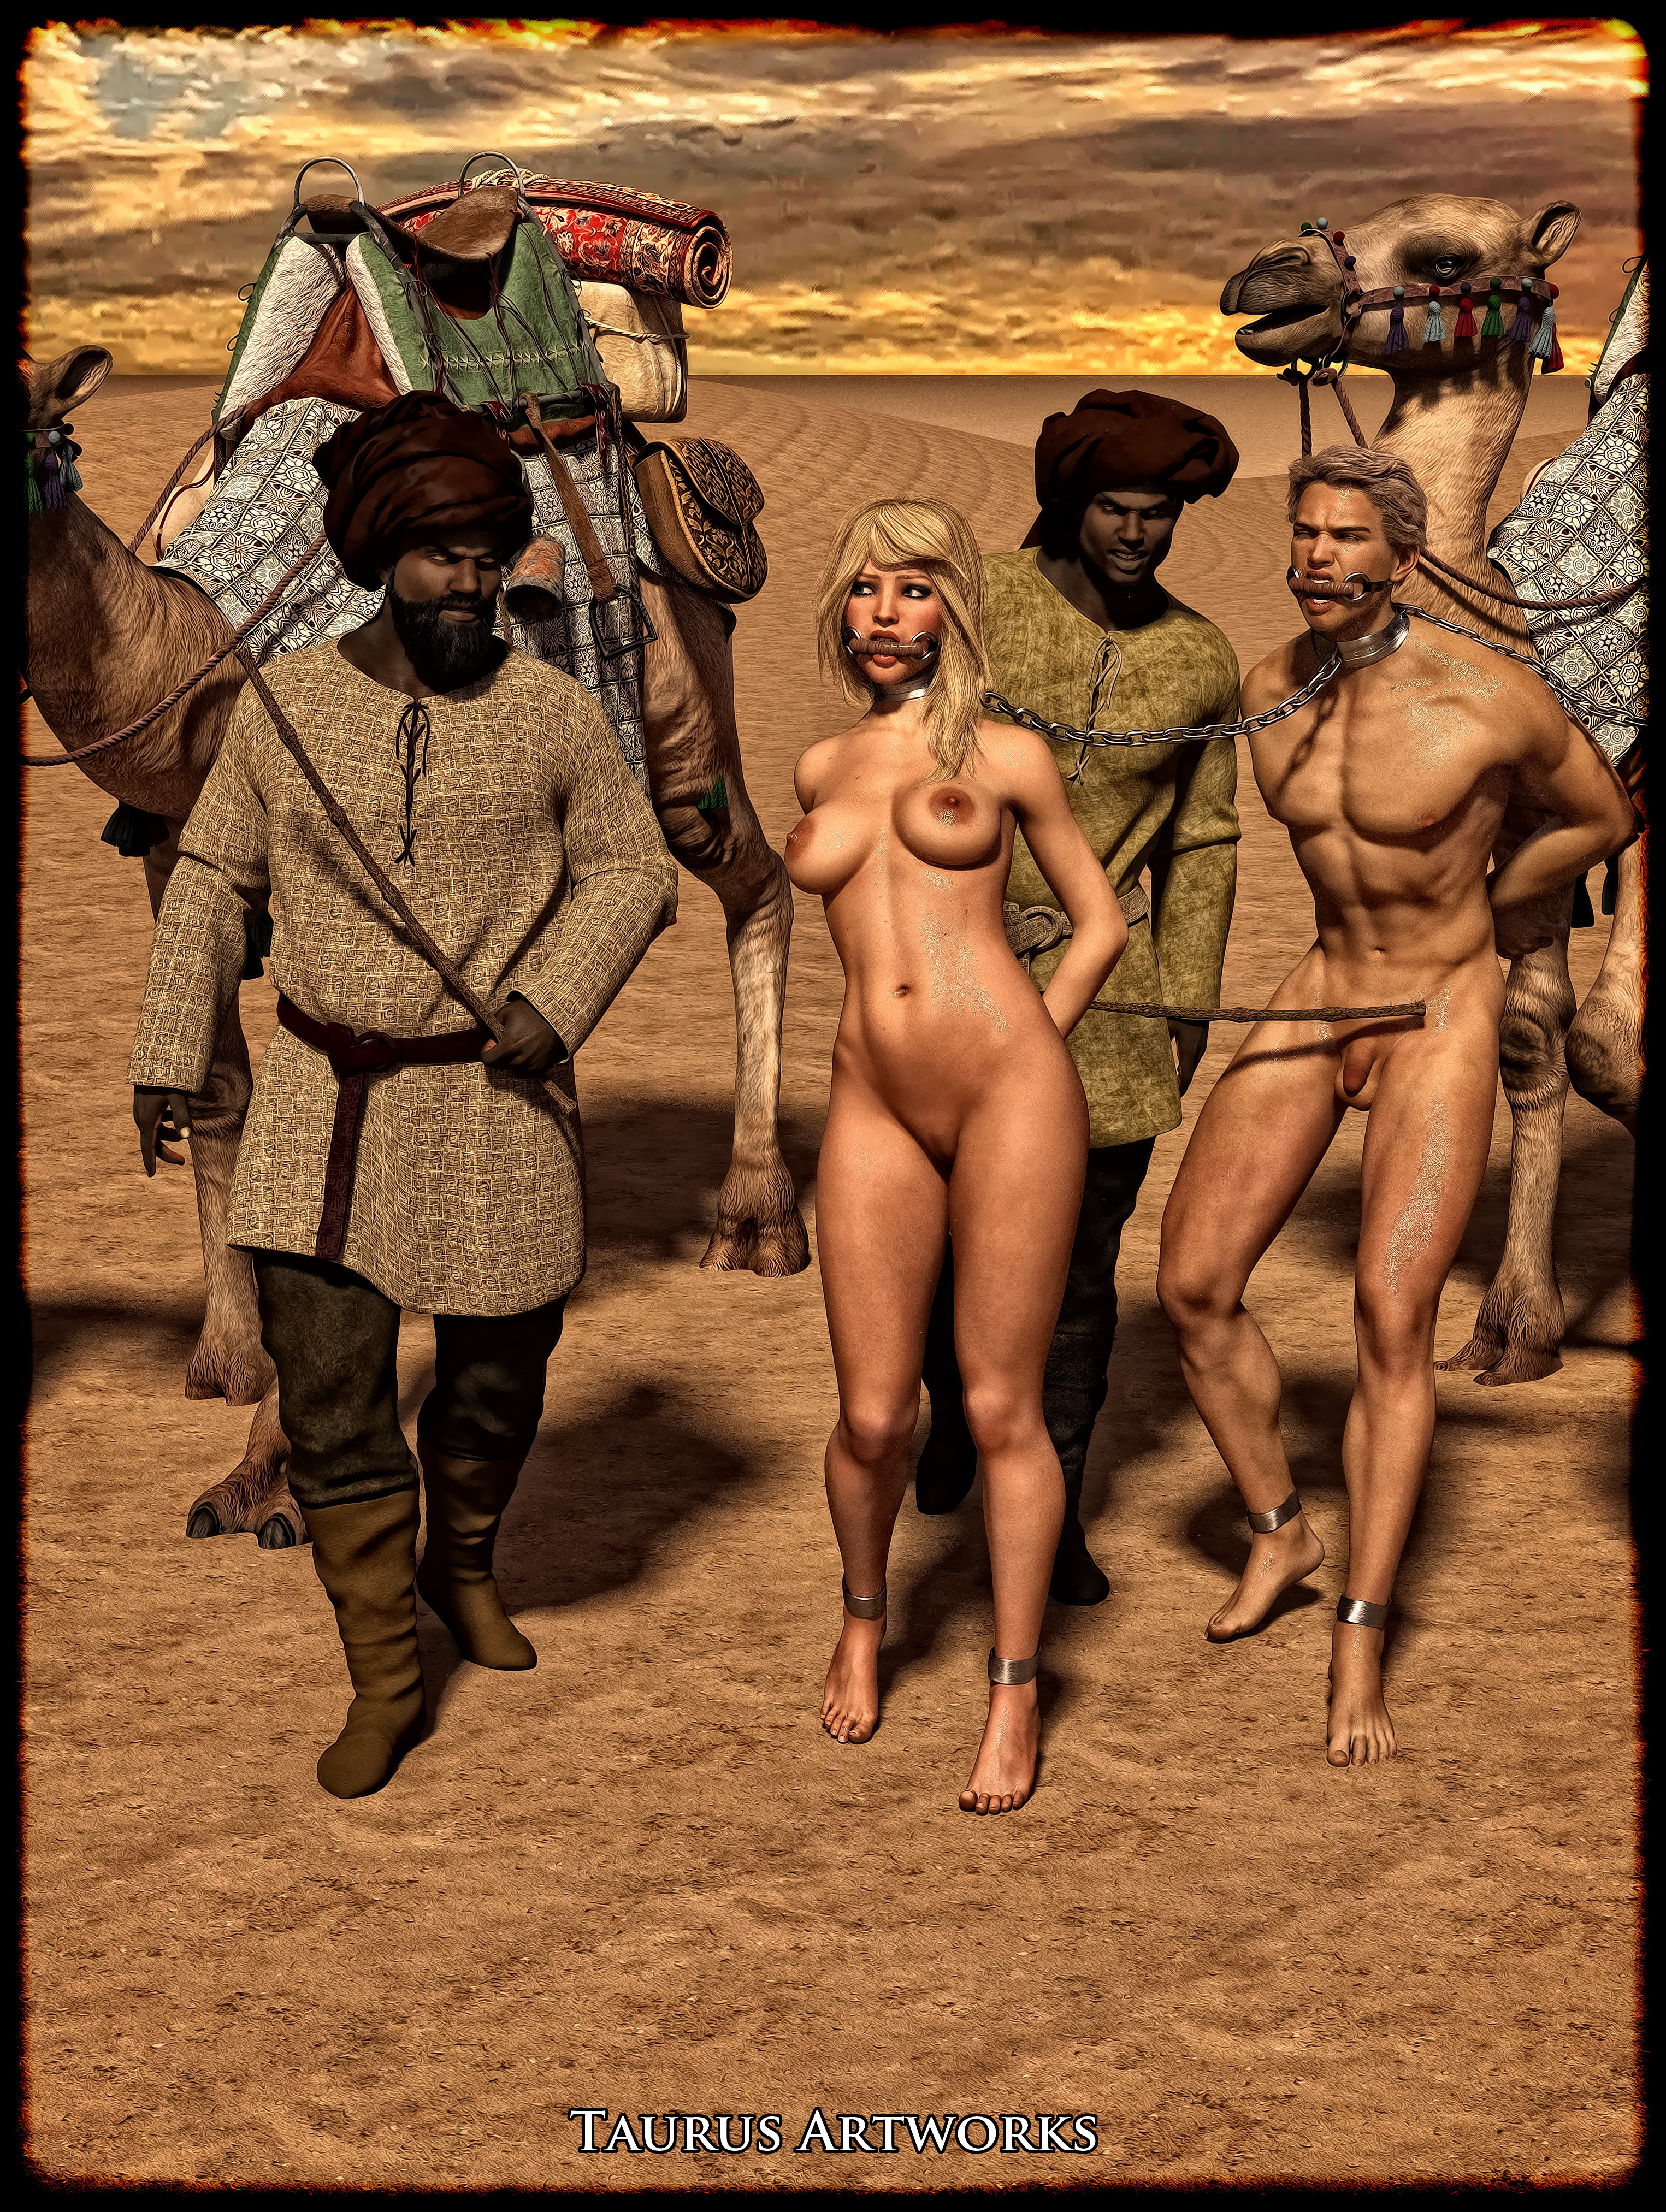 Andy Adler Nude the captives are marched nude and cuffed under the hot